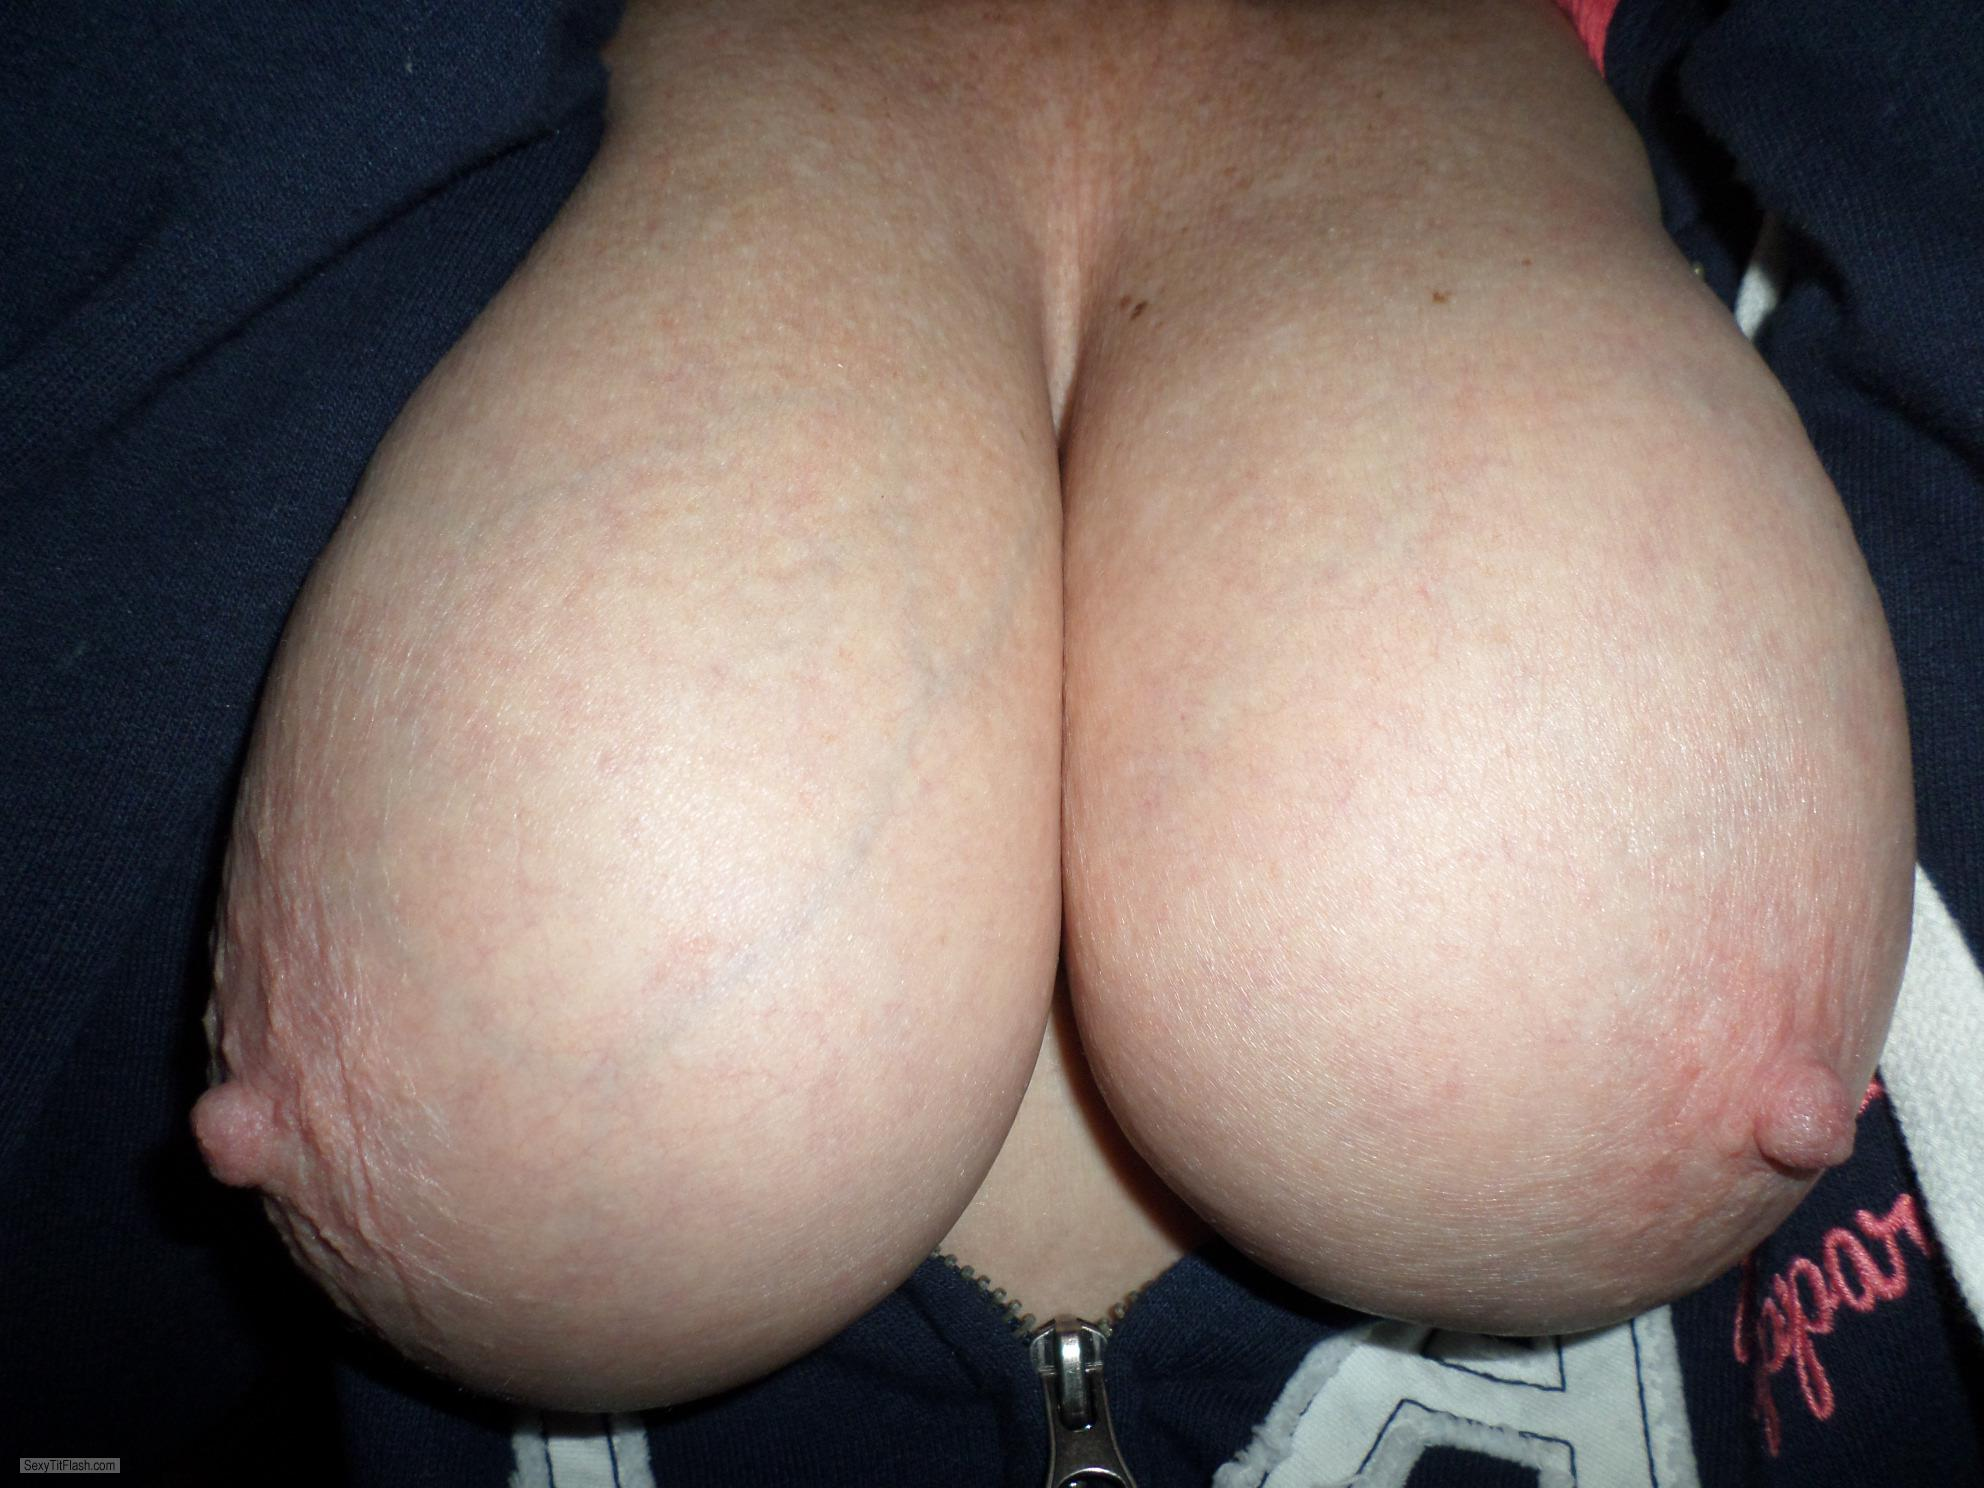 Bien mathre free milk tits chat.com